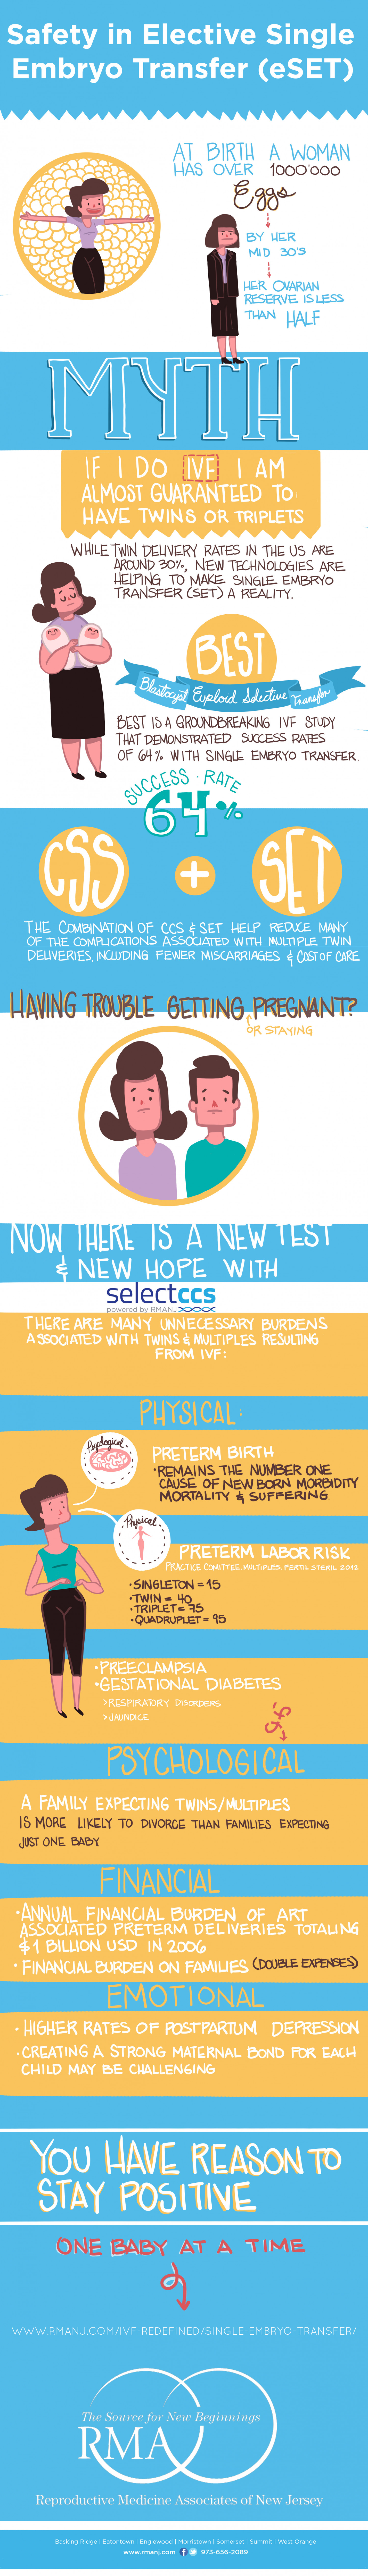 Safety in Elective Single Embryo Transfer (eSET) Infographic